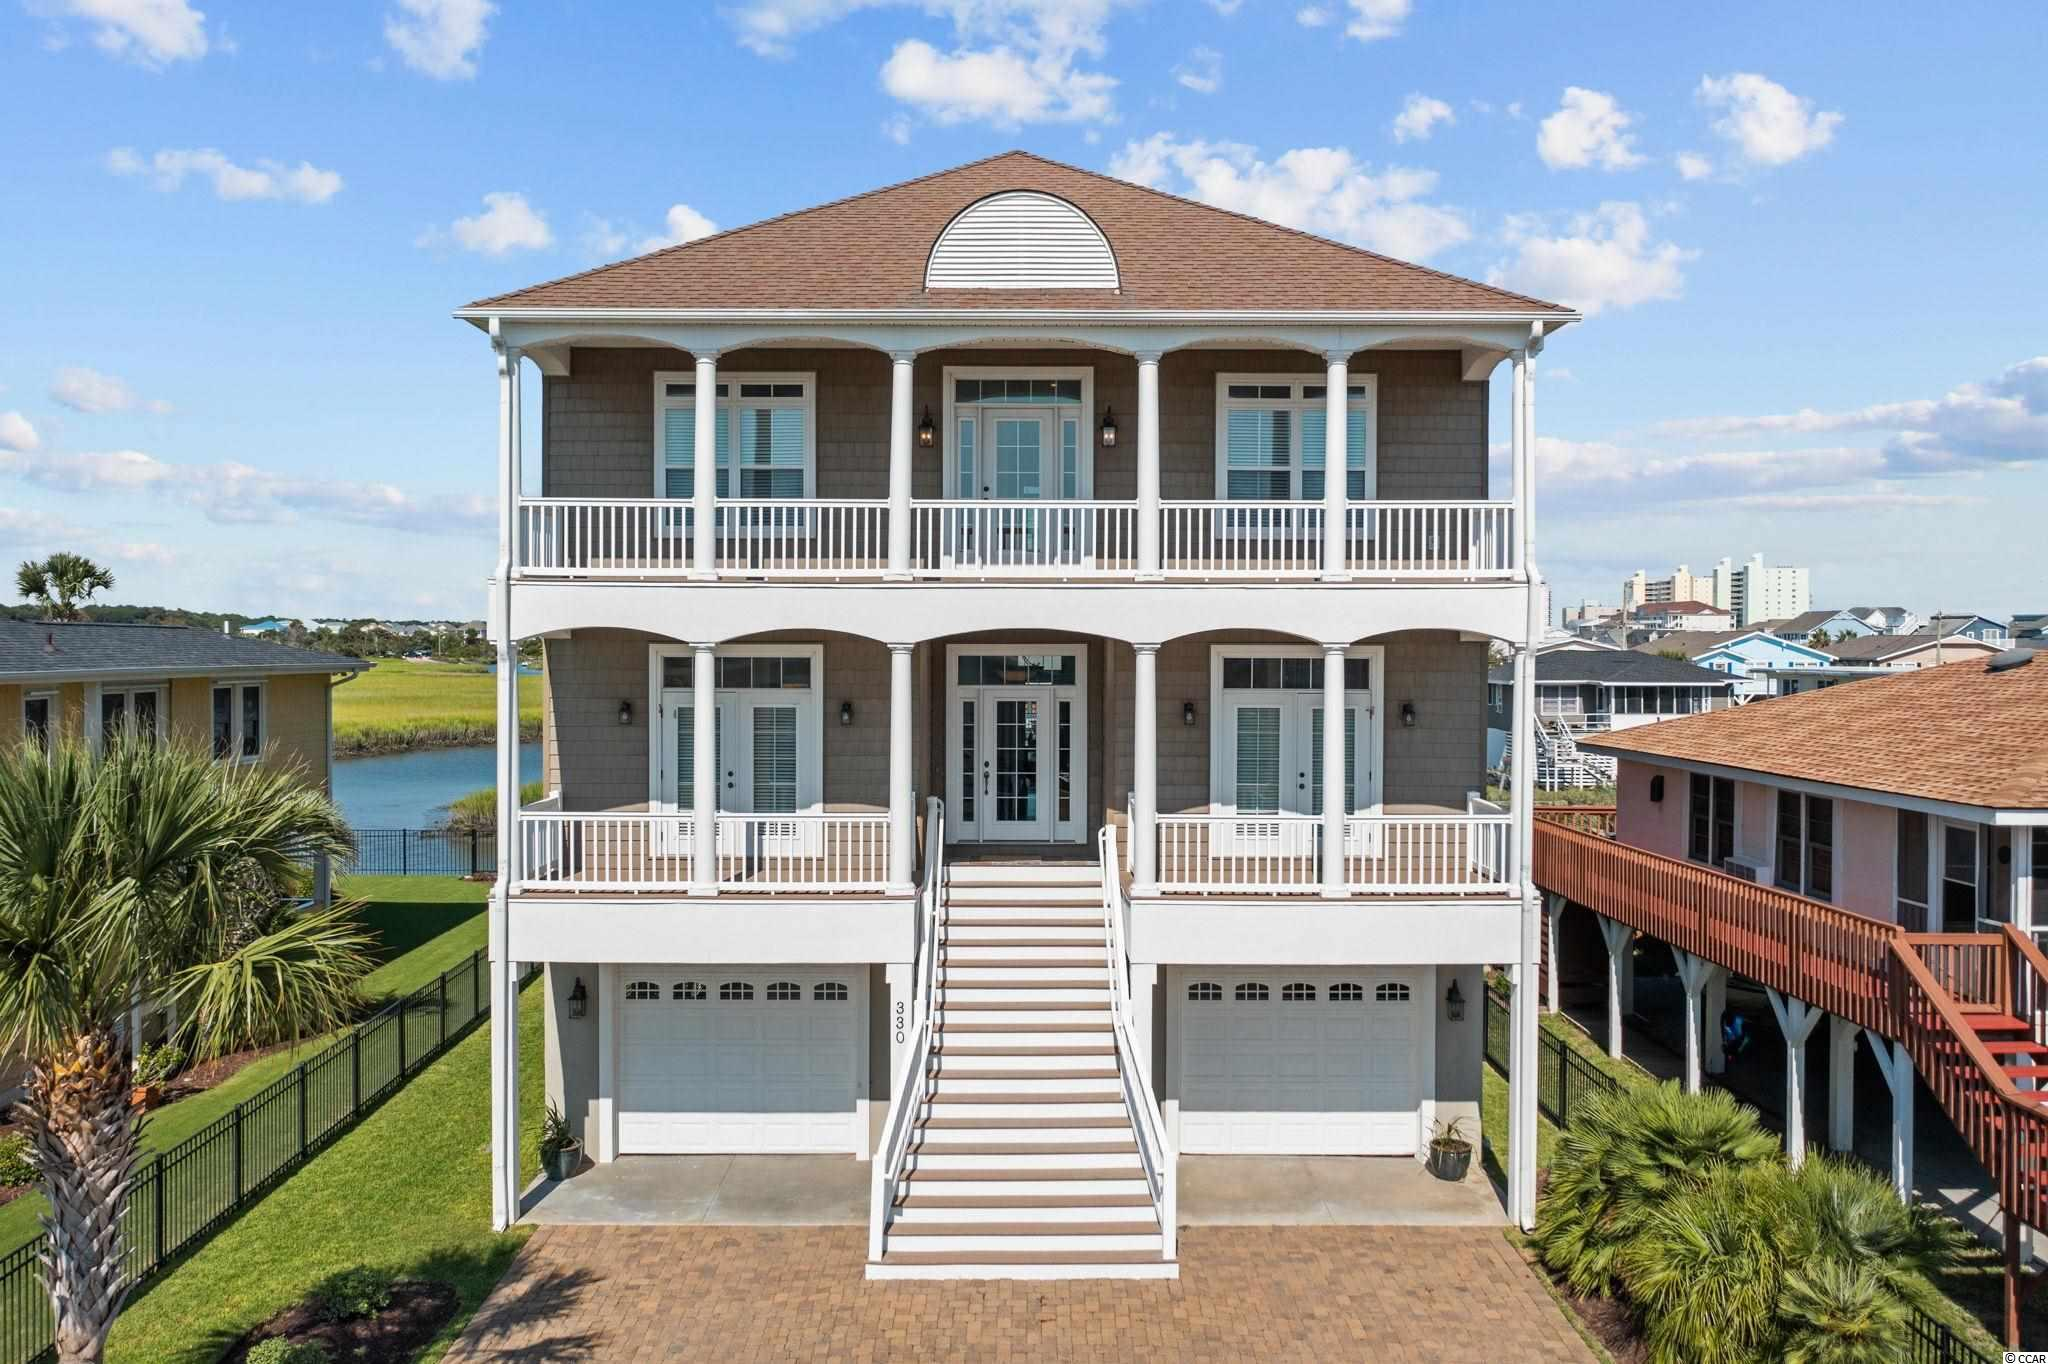 Stunning low country styled beach home located directly on the marsh in Cherry Grove Beach.  This property was custom built in 2008 by the current owners with top of the line detailing and hand selected finishes.  Prime location with outstanding views of the channel, marsh and Tidewater golf course.  The lot location provides quick access into the main channel and ocean navigation within minutes.  Whether a second home or primary residence, everything you could ask for in a beach home has been thought of here.  Classic raised style, the ground floor has two garage bays with one acting as an open air breezeway.  The other bay is fully enclosed with storage rooms between the two.  As you enter the home on the main floor, you immediately notice the level of detailing.  Not only has this home been expertly constructed, the interior furnishings and decor have been hand selected and curated.  Most furniture is from Lexington and Hooker with luxury bedding from Pottery Barn and Serena & Lilly.  The property will convey to new owners with a fully furnished interior minus some exceptions.  Heavy crown molding is found throughout, blonde hickory plank hardwood flooring on the main level and a soothing coastal color palette sets the tone for this exquisite property.  The five bedroom floor plan offers space for everyone and plenty of privacy with a living room on each floor.  The main floor has an owners suite with large attached bath.  A secondary main floor bedroom is across the hall with an en-suite bath.  Both bedrooms have french door access to the full length front balcony.  Accessed from the foyer, the heart of the home is an open kitchen, dining and living space.  The rear of the home is lined with windows with transoms above to maximize the one of a kind marsh views.  The living room is a comfortable size and boasts a coffered ceiling.  Elevator entry can be found in the living room and can be used to access either the ground or top floors.  The kitchen features semi 